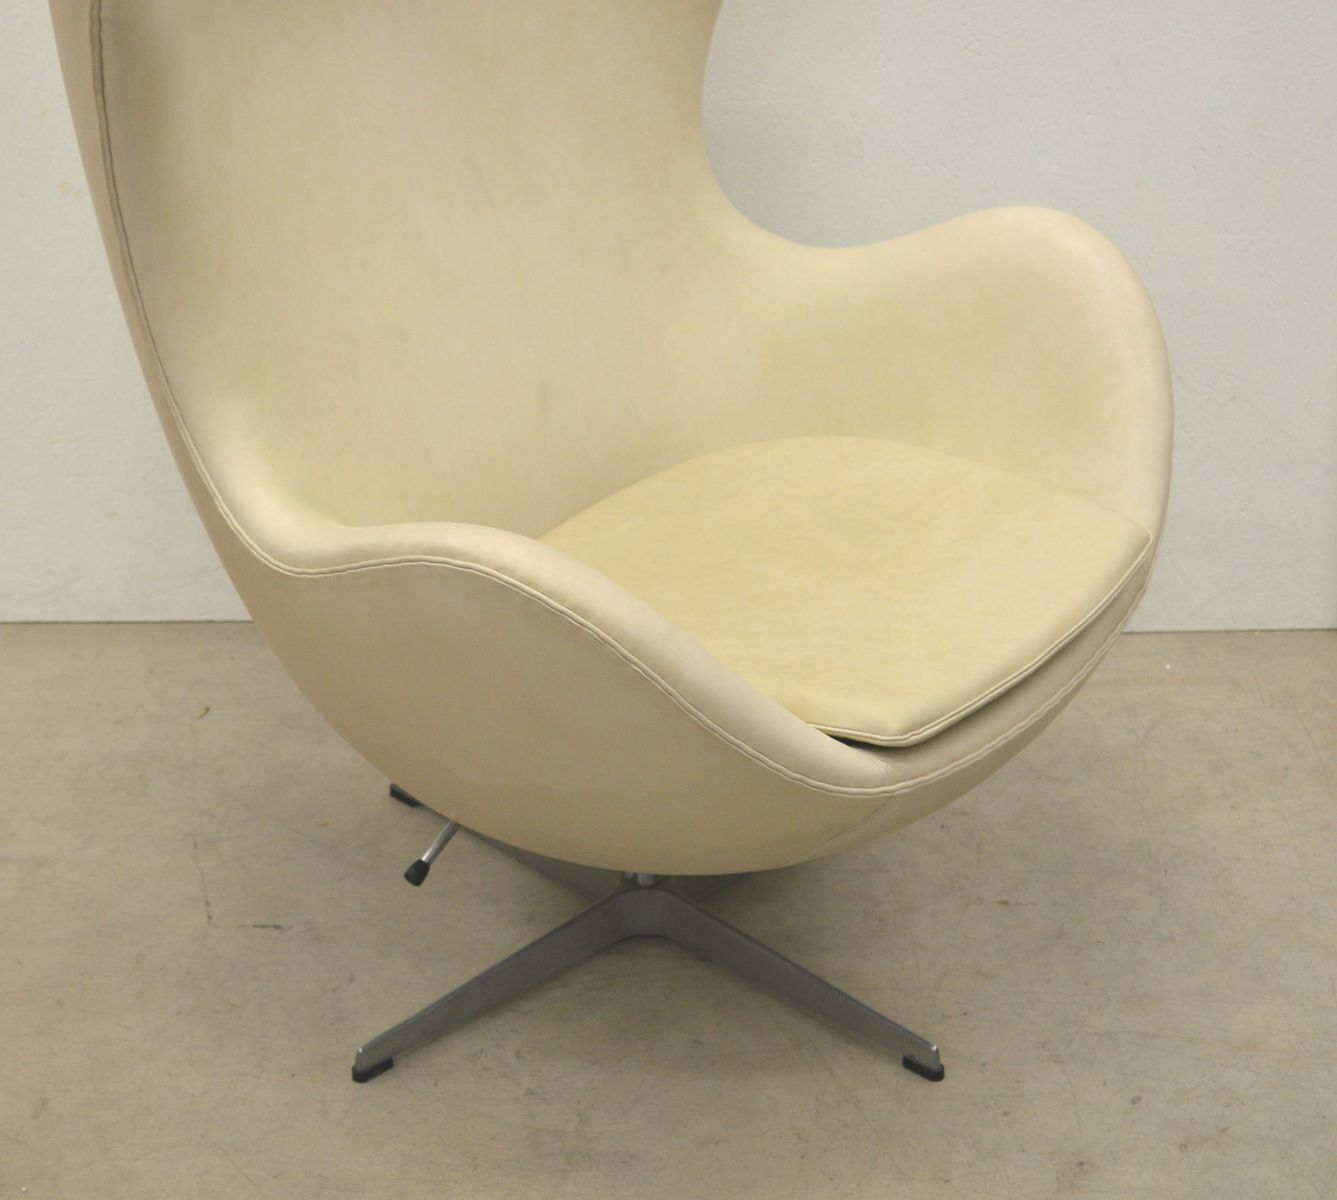 cream egg chair ottoman by arne jacobsen for fritz. Black Bedroom Furniture Sets. Home Design Ideas